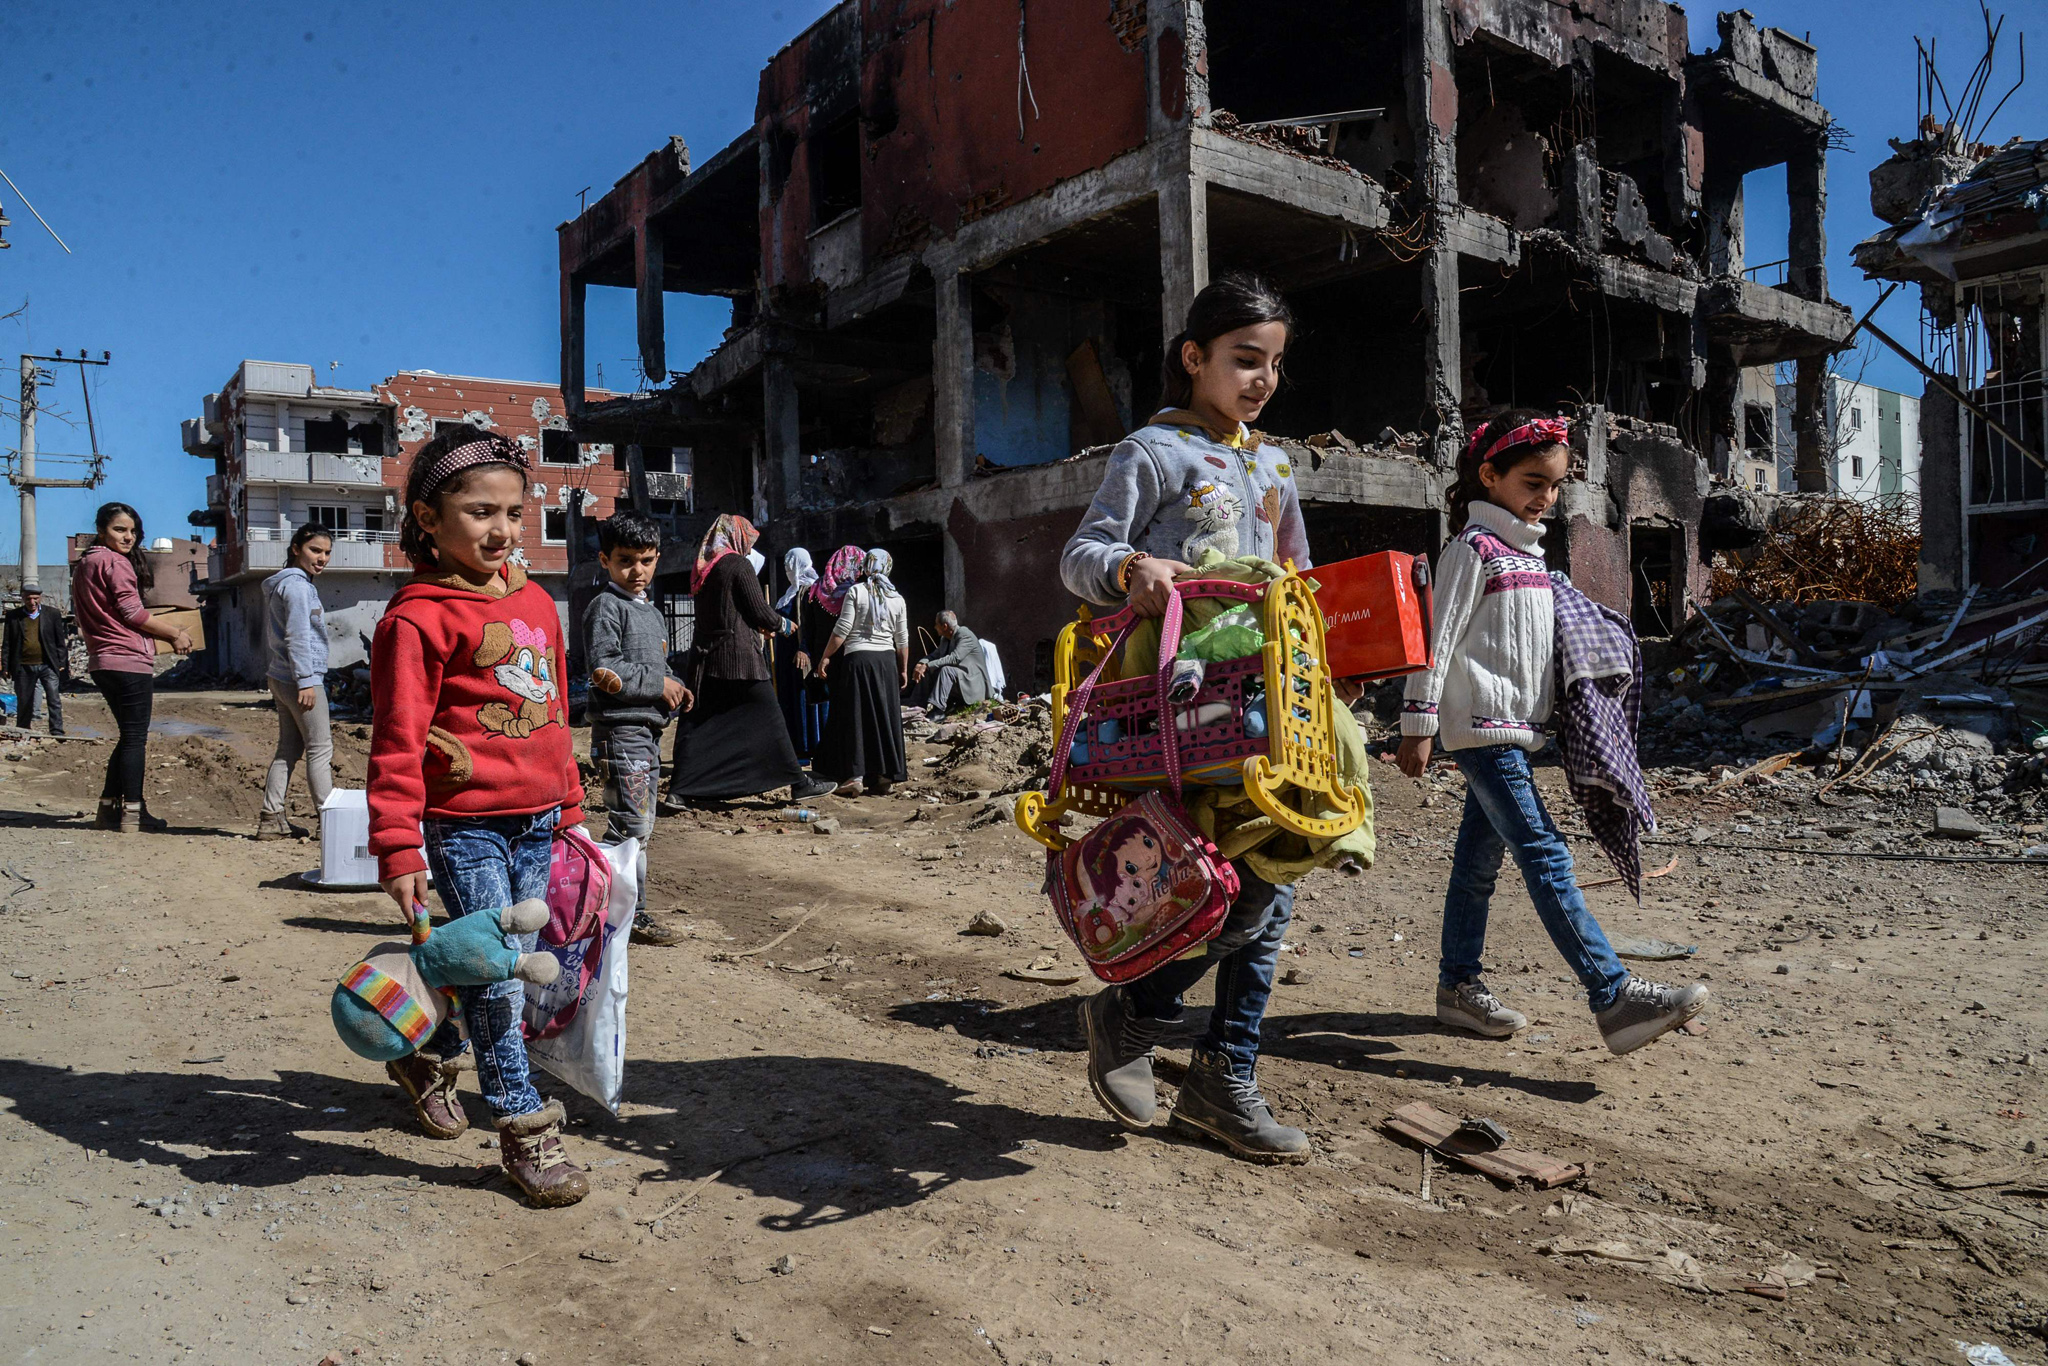 Young girls walk next to ruined houses a...Young girls walk next to ruined houses and shops on March 8, 2016 during International Women's day in Cizre district. Residents of Cizre in southeastern Turkey began returning home Wednesday after authorities partially lifted a curfew in place since December for a controversial operation against Kurdish rebels which left many homes destroyed. / AFP / ILYAS AKENGINILYAS AKENGIN/AFP/Getty Images